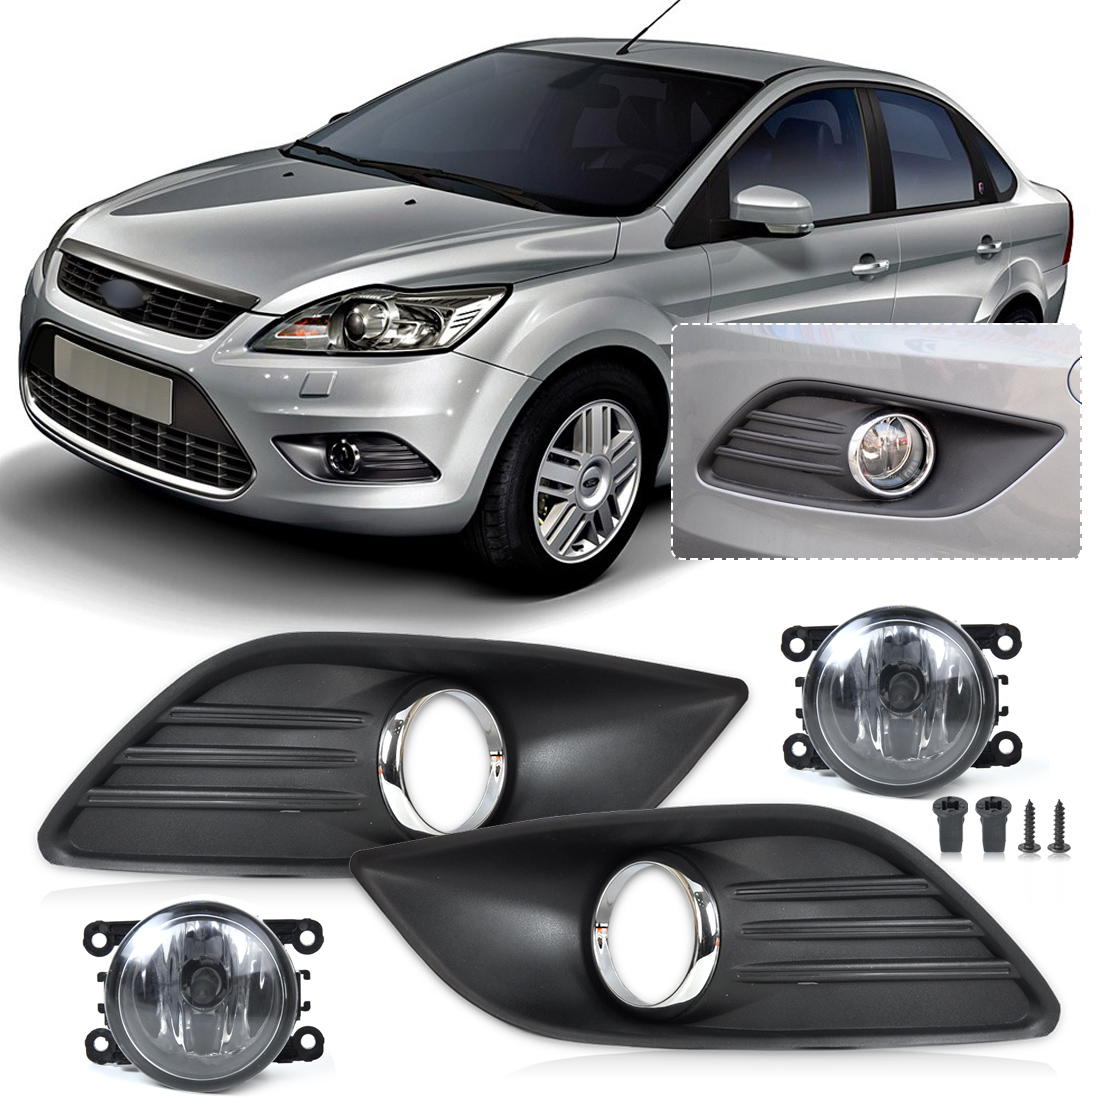 DWCX 2pcs Front Left + Right Side Lower Bumper Fog Light Grille + 2pcs Lamp Kit For Ford Focus Sedan 2009 2010 2011 12v 55w car fog light assembly for ford focus hatchback 2009 2010 2011 front fog light lamp with harness relay fog light